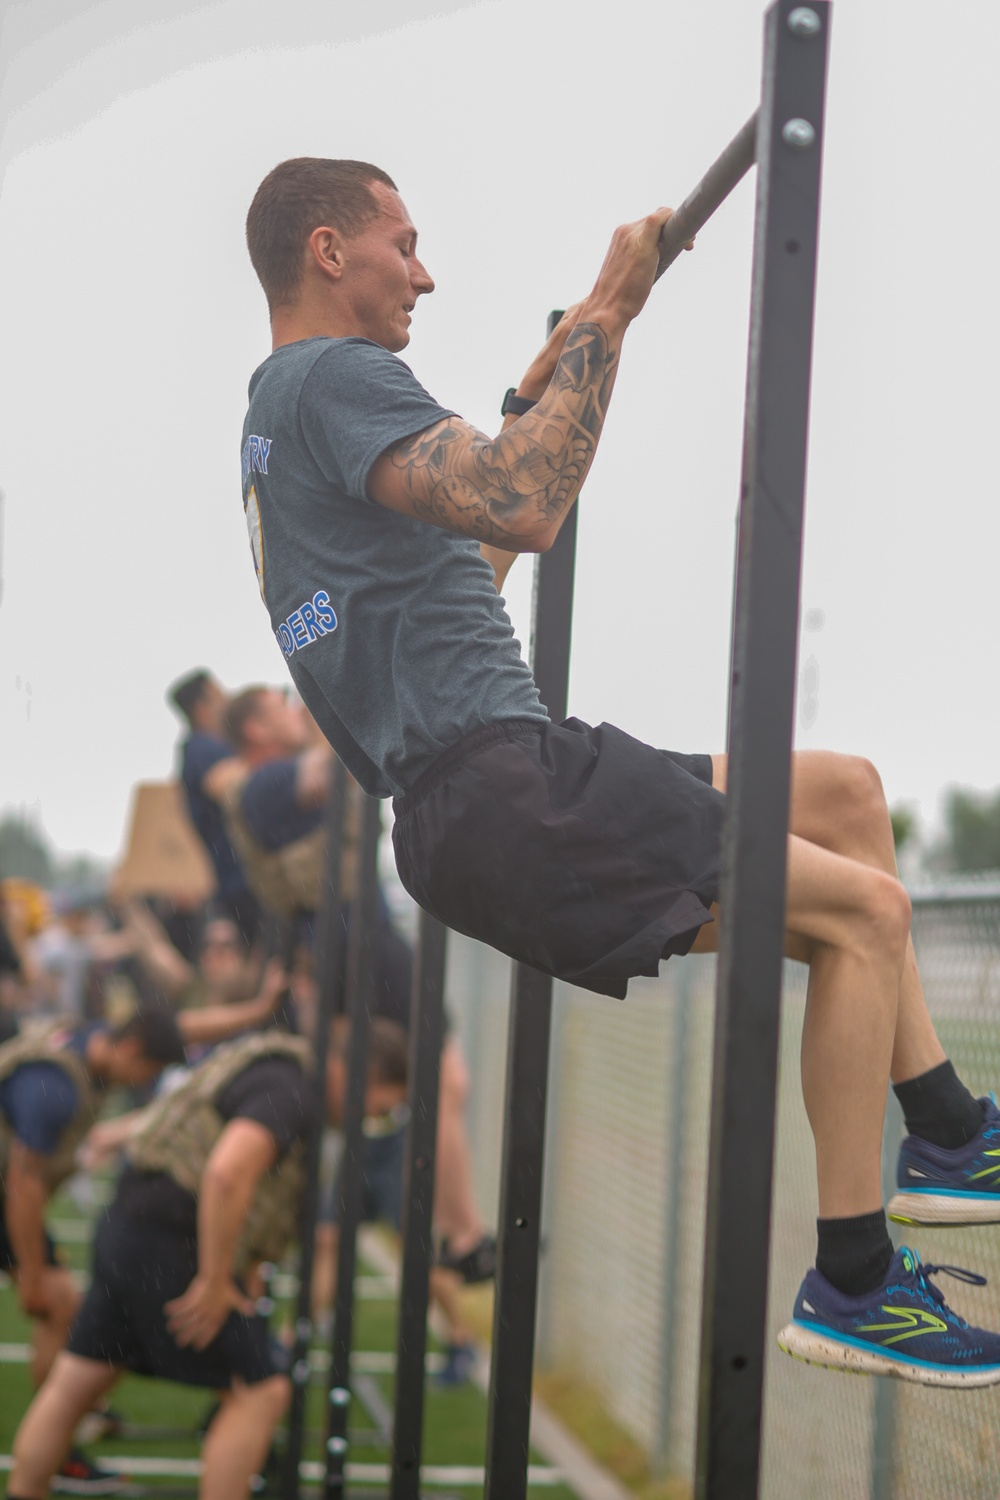 101st Airborne Division invites fitness influencers to compete in a 5 on 5 Memorial Day fitness challenge